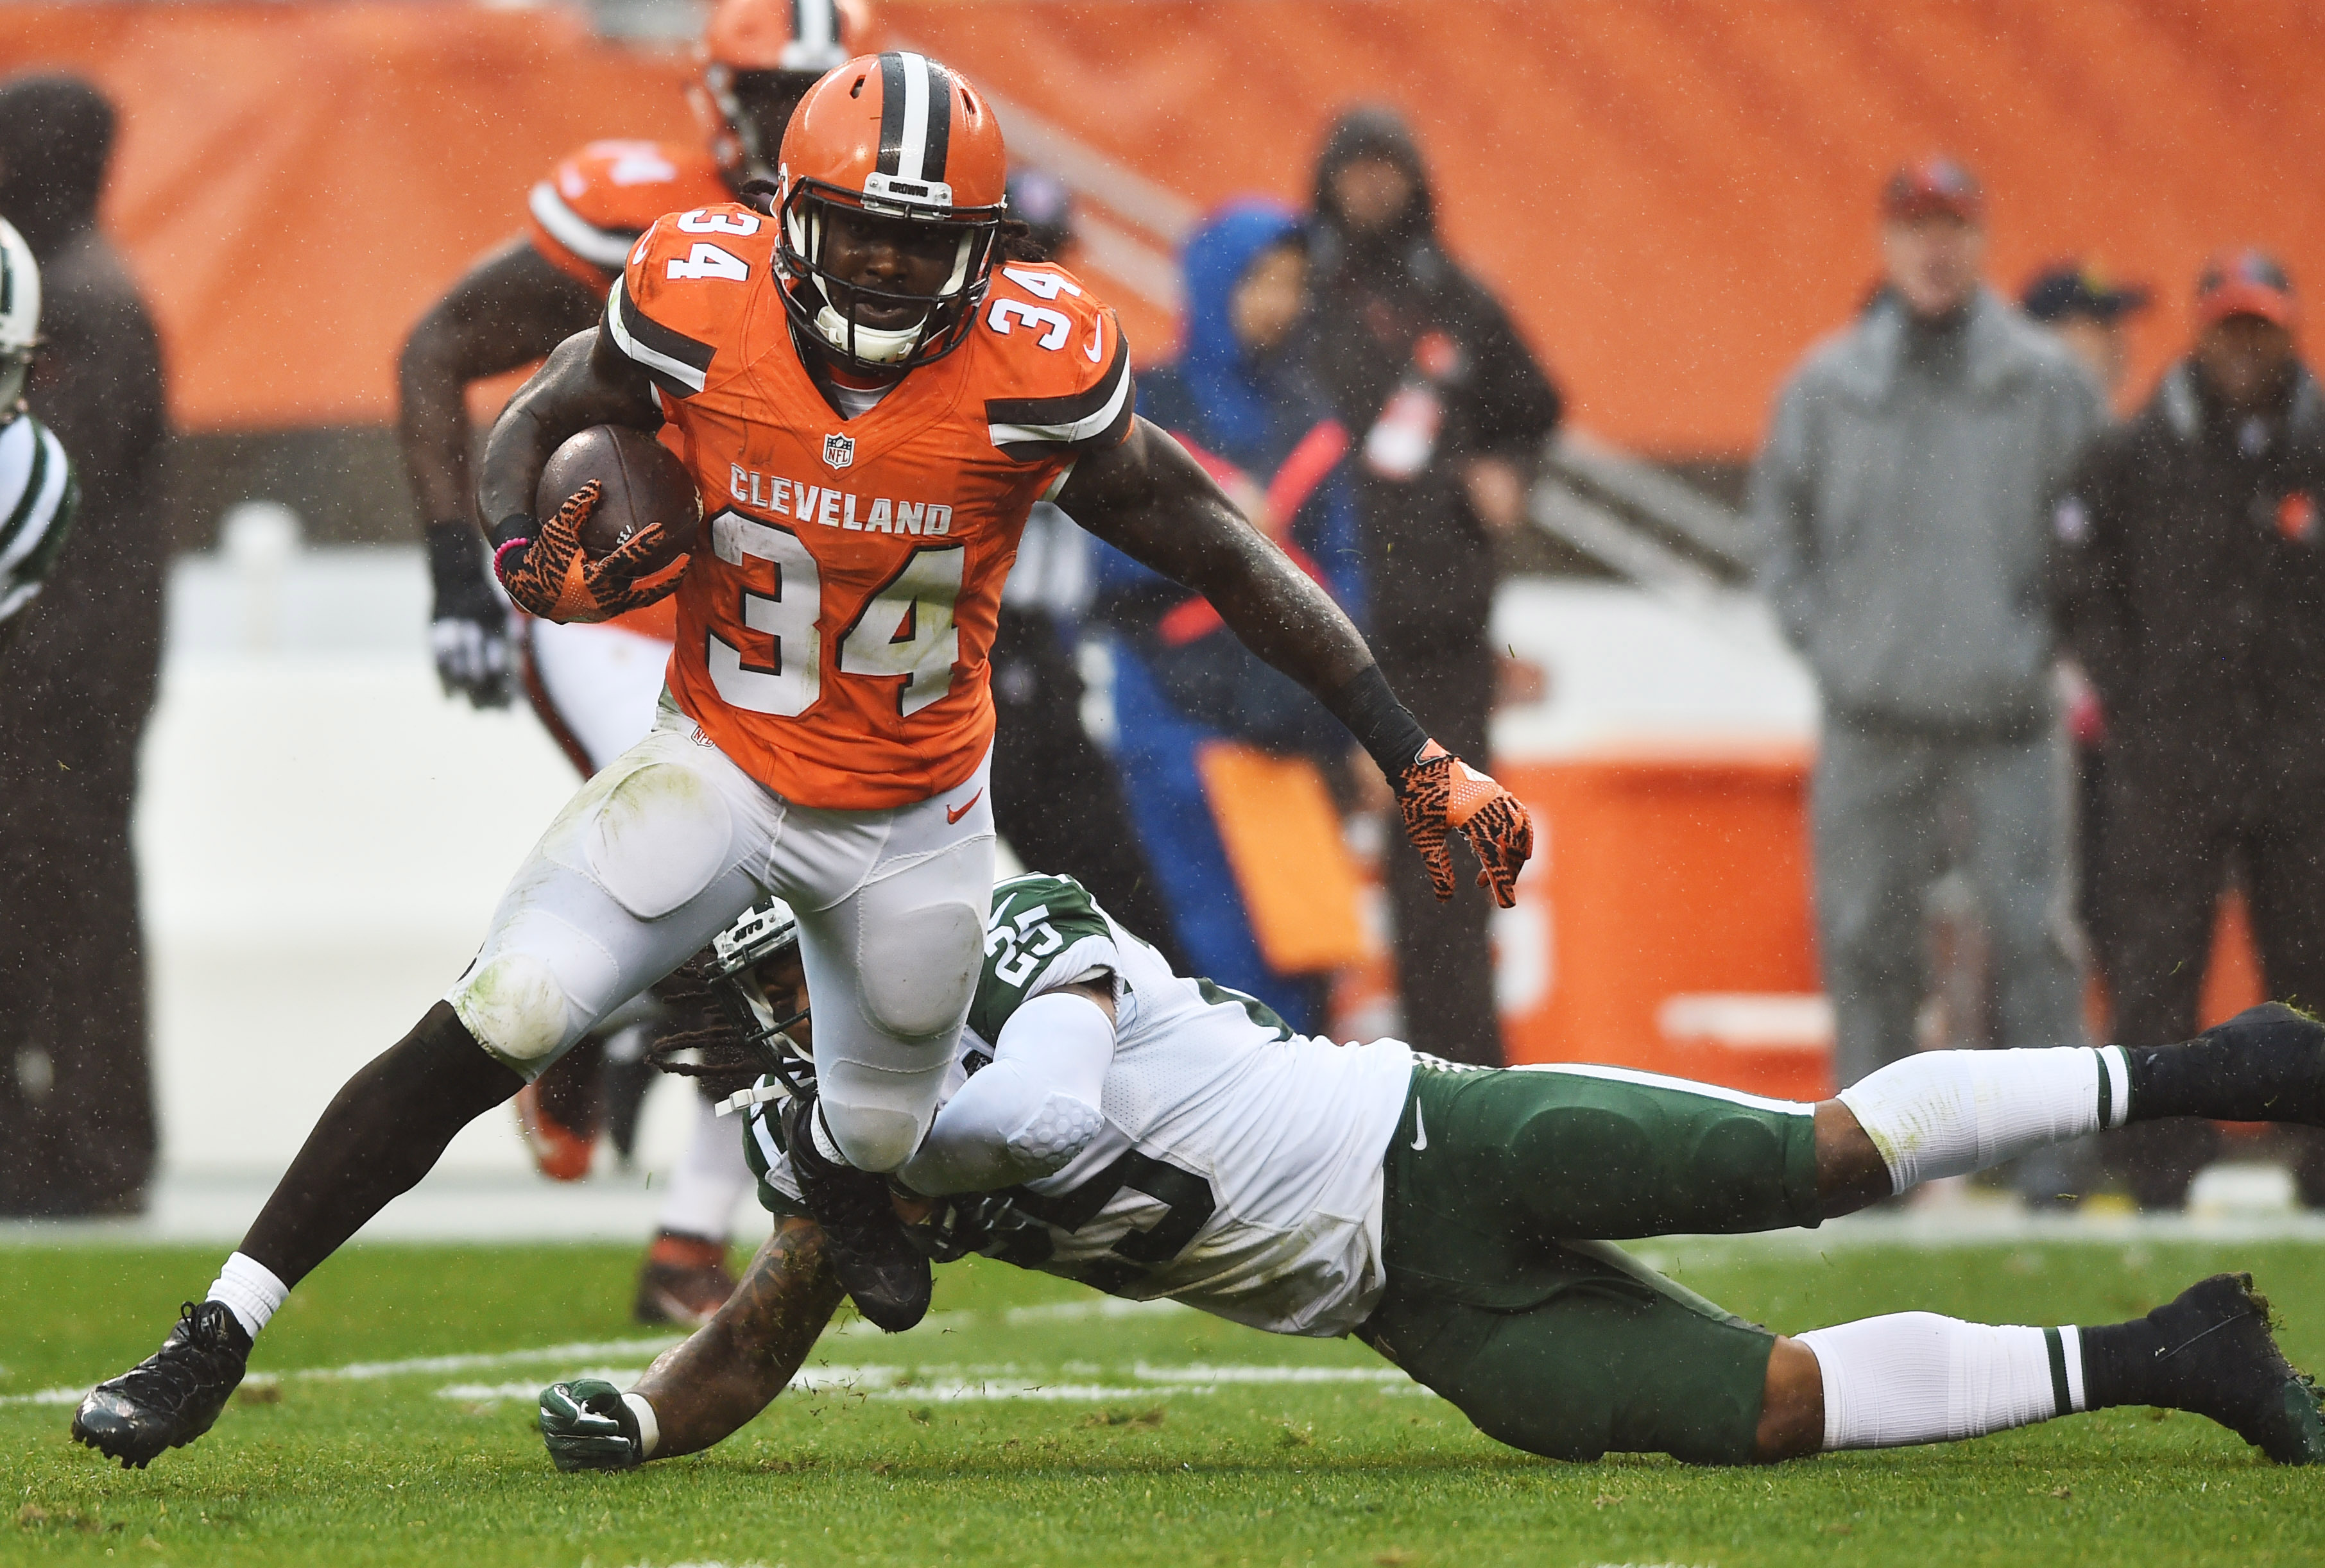 Cleveland Browns: Waiting on Isaiah Crowell to sign contract tender